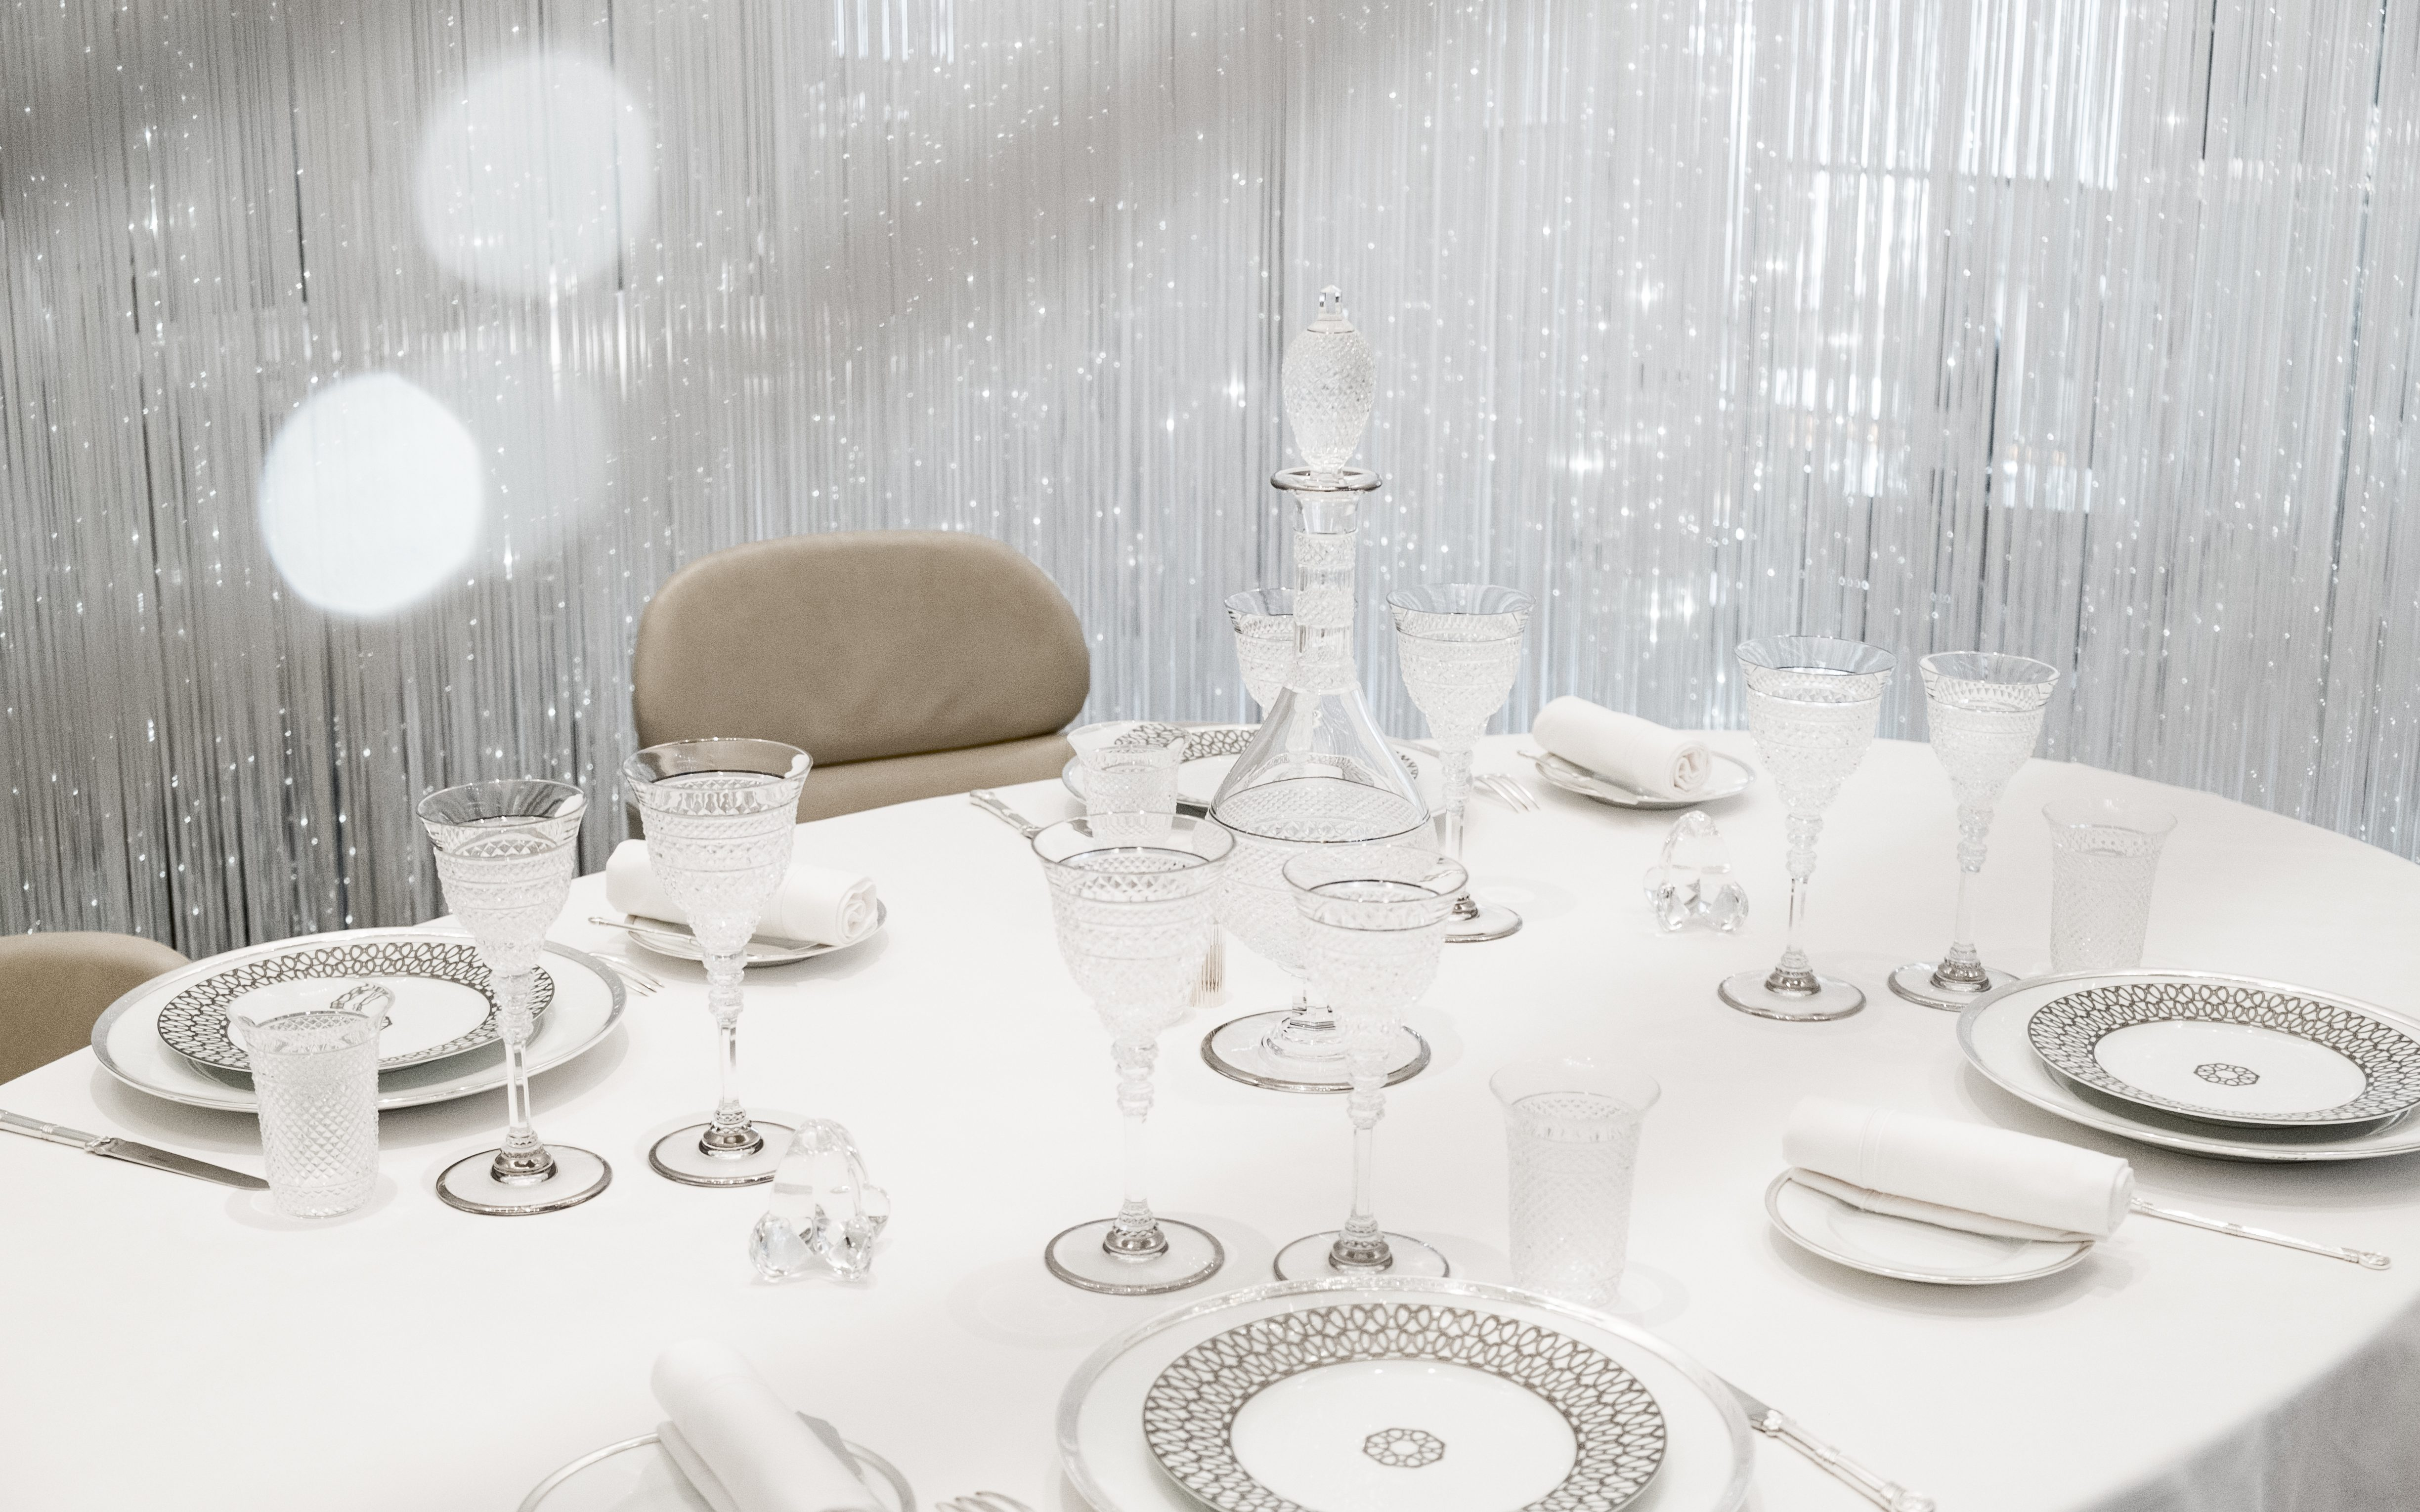 private dining room The World's Most Remarkable Private Dining Rooms 3 The Worlds Most Remarkable Private Dining Rooms